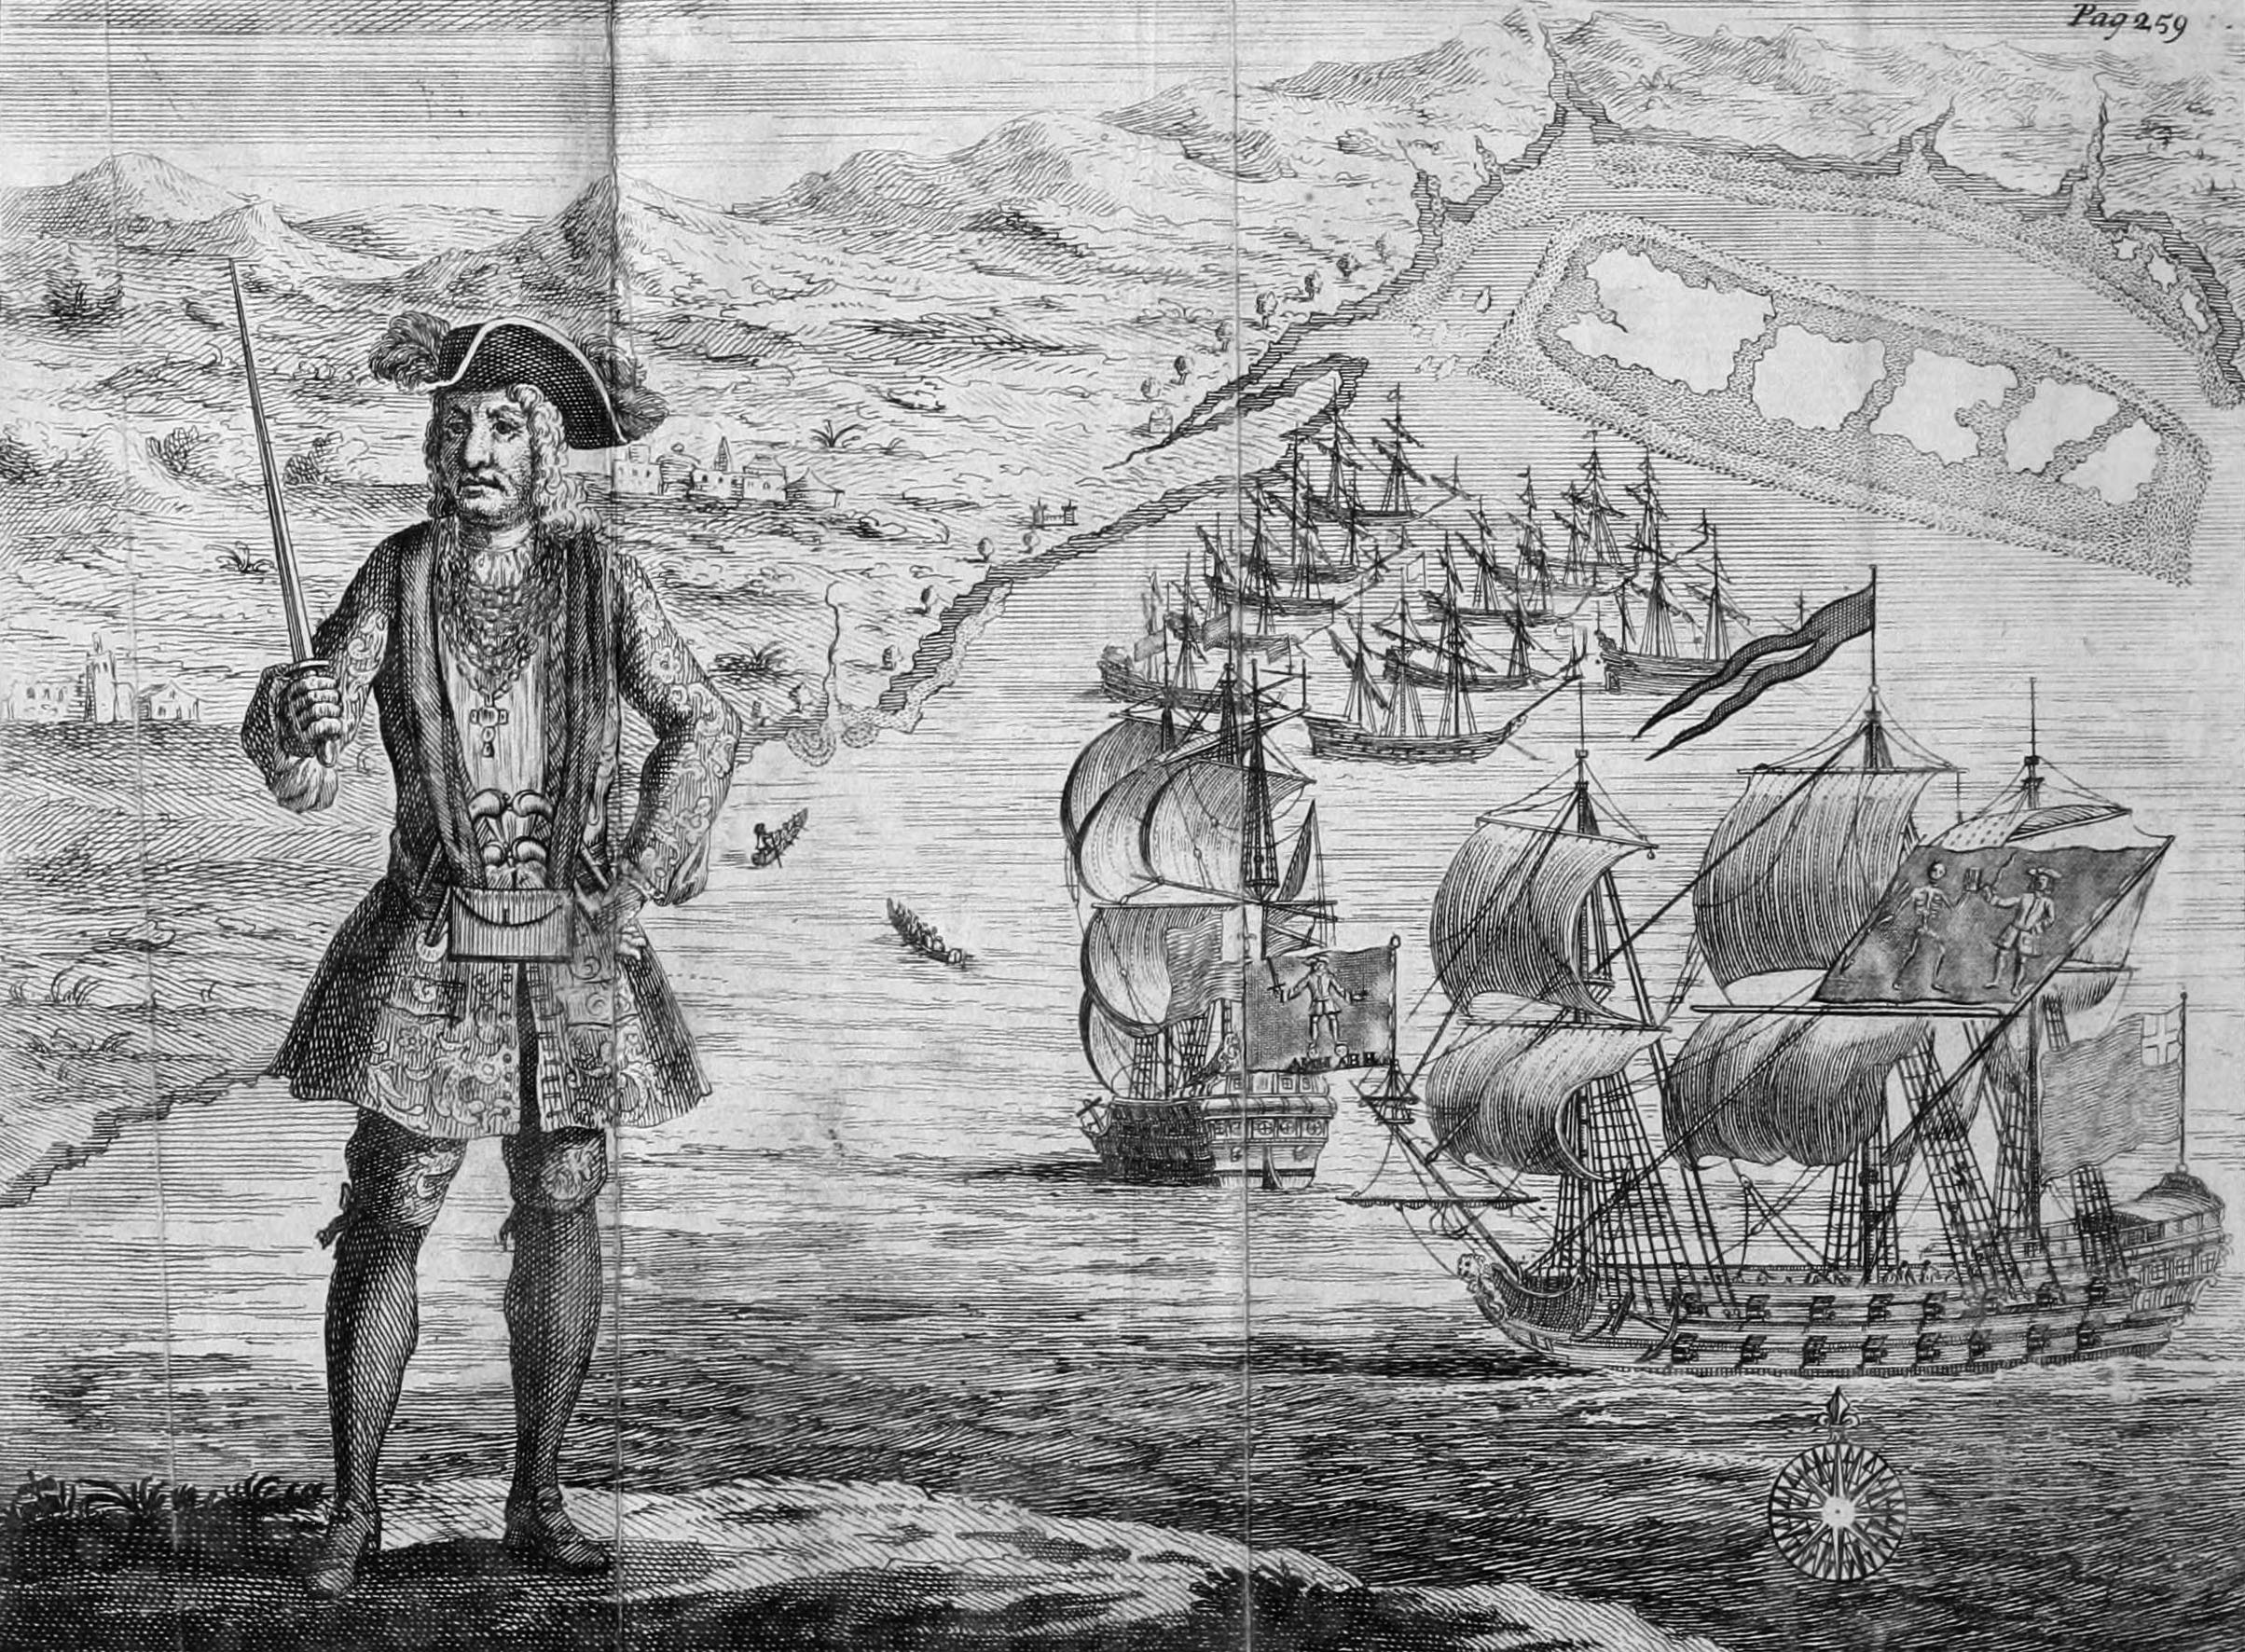 Bartholomew Roberts in 1722 (off West Africa)